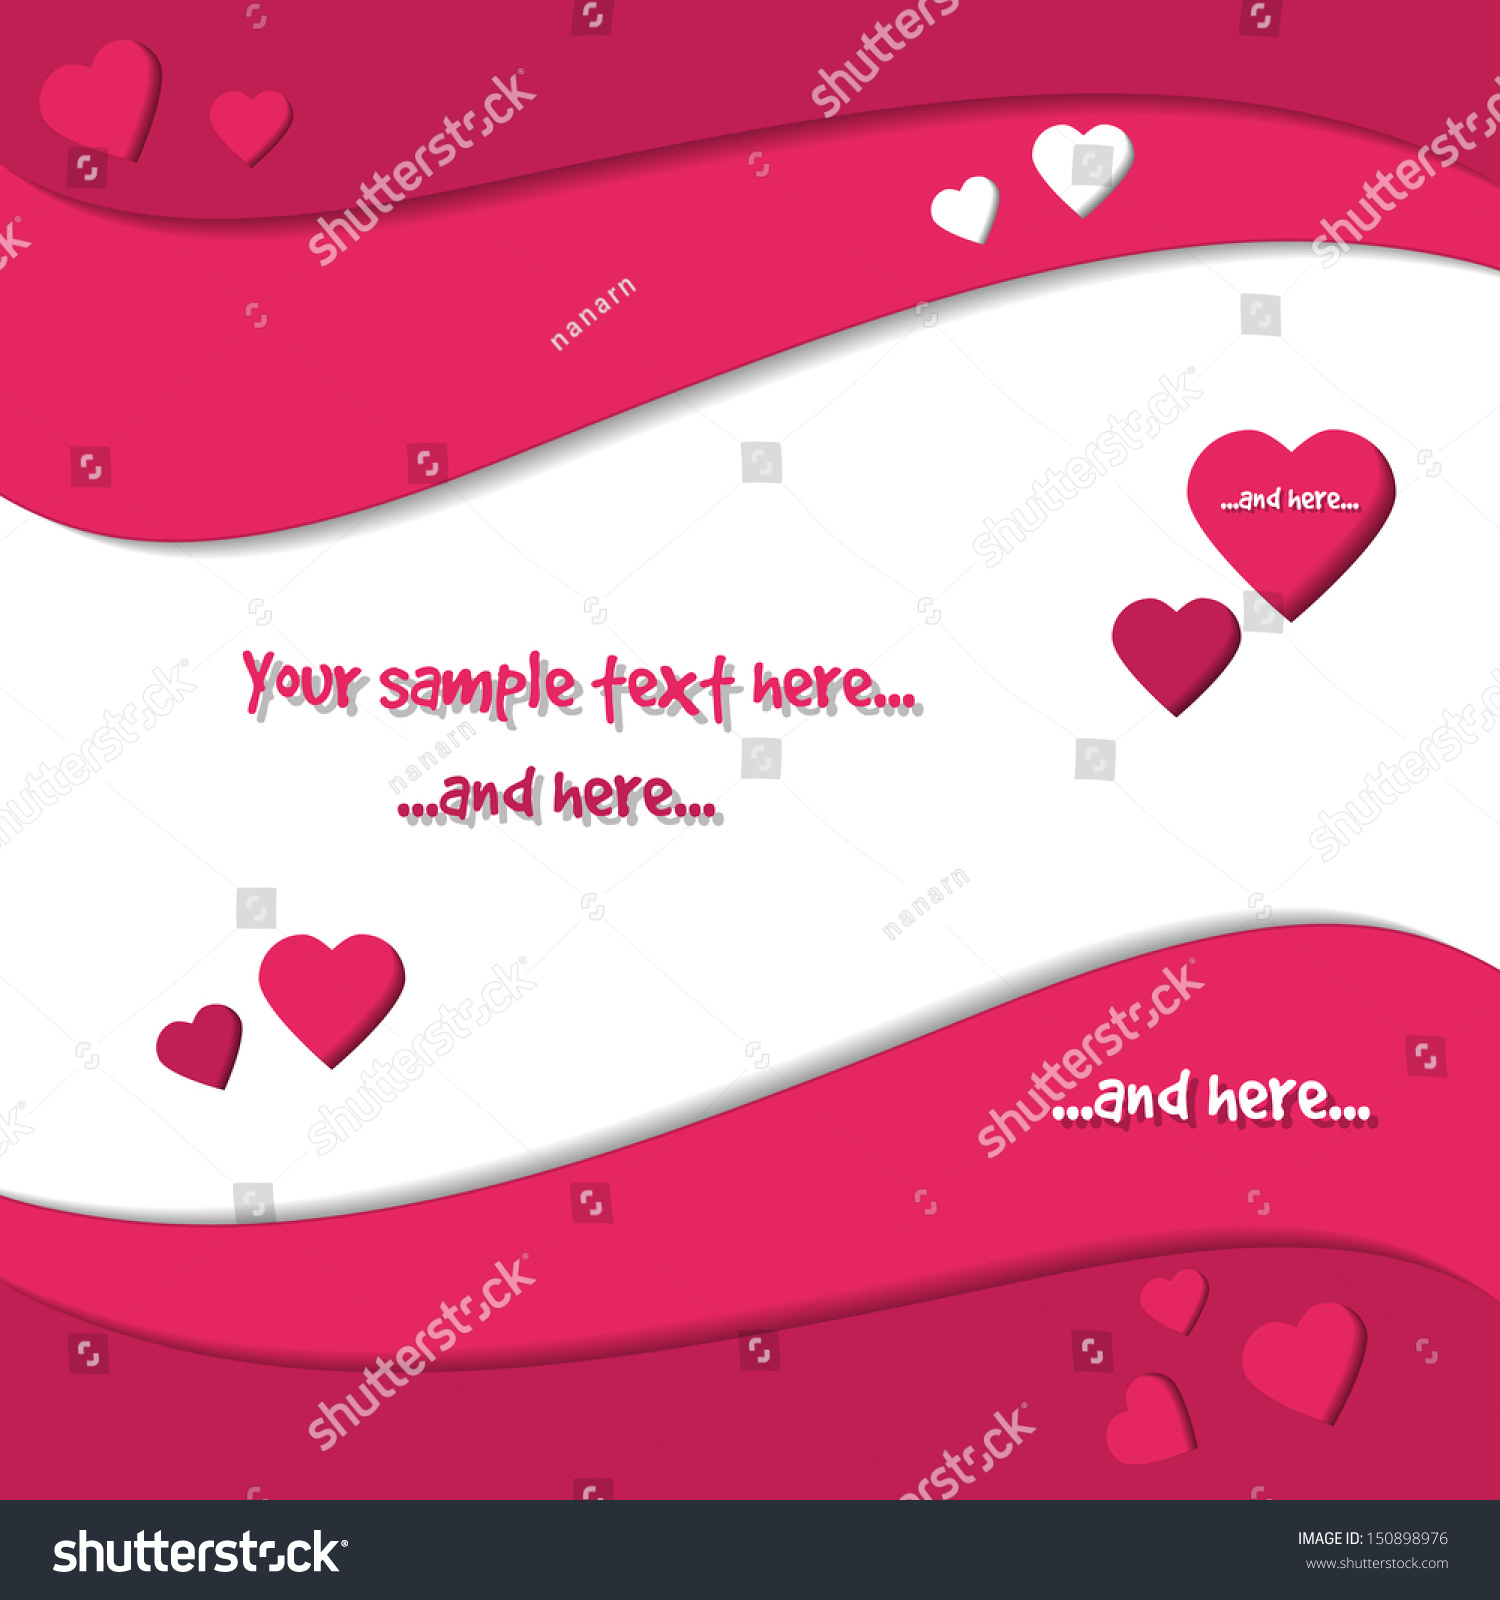 Saint valentines day greeting card love stock vector royalty free saint valentines day greeting card love hearts and spiral design writable wallpaper m4hsunfo